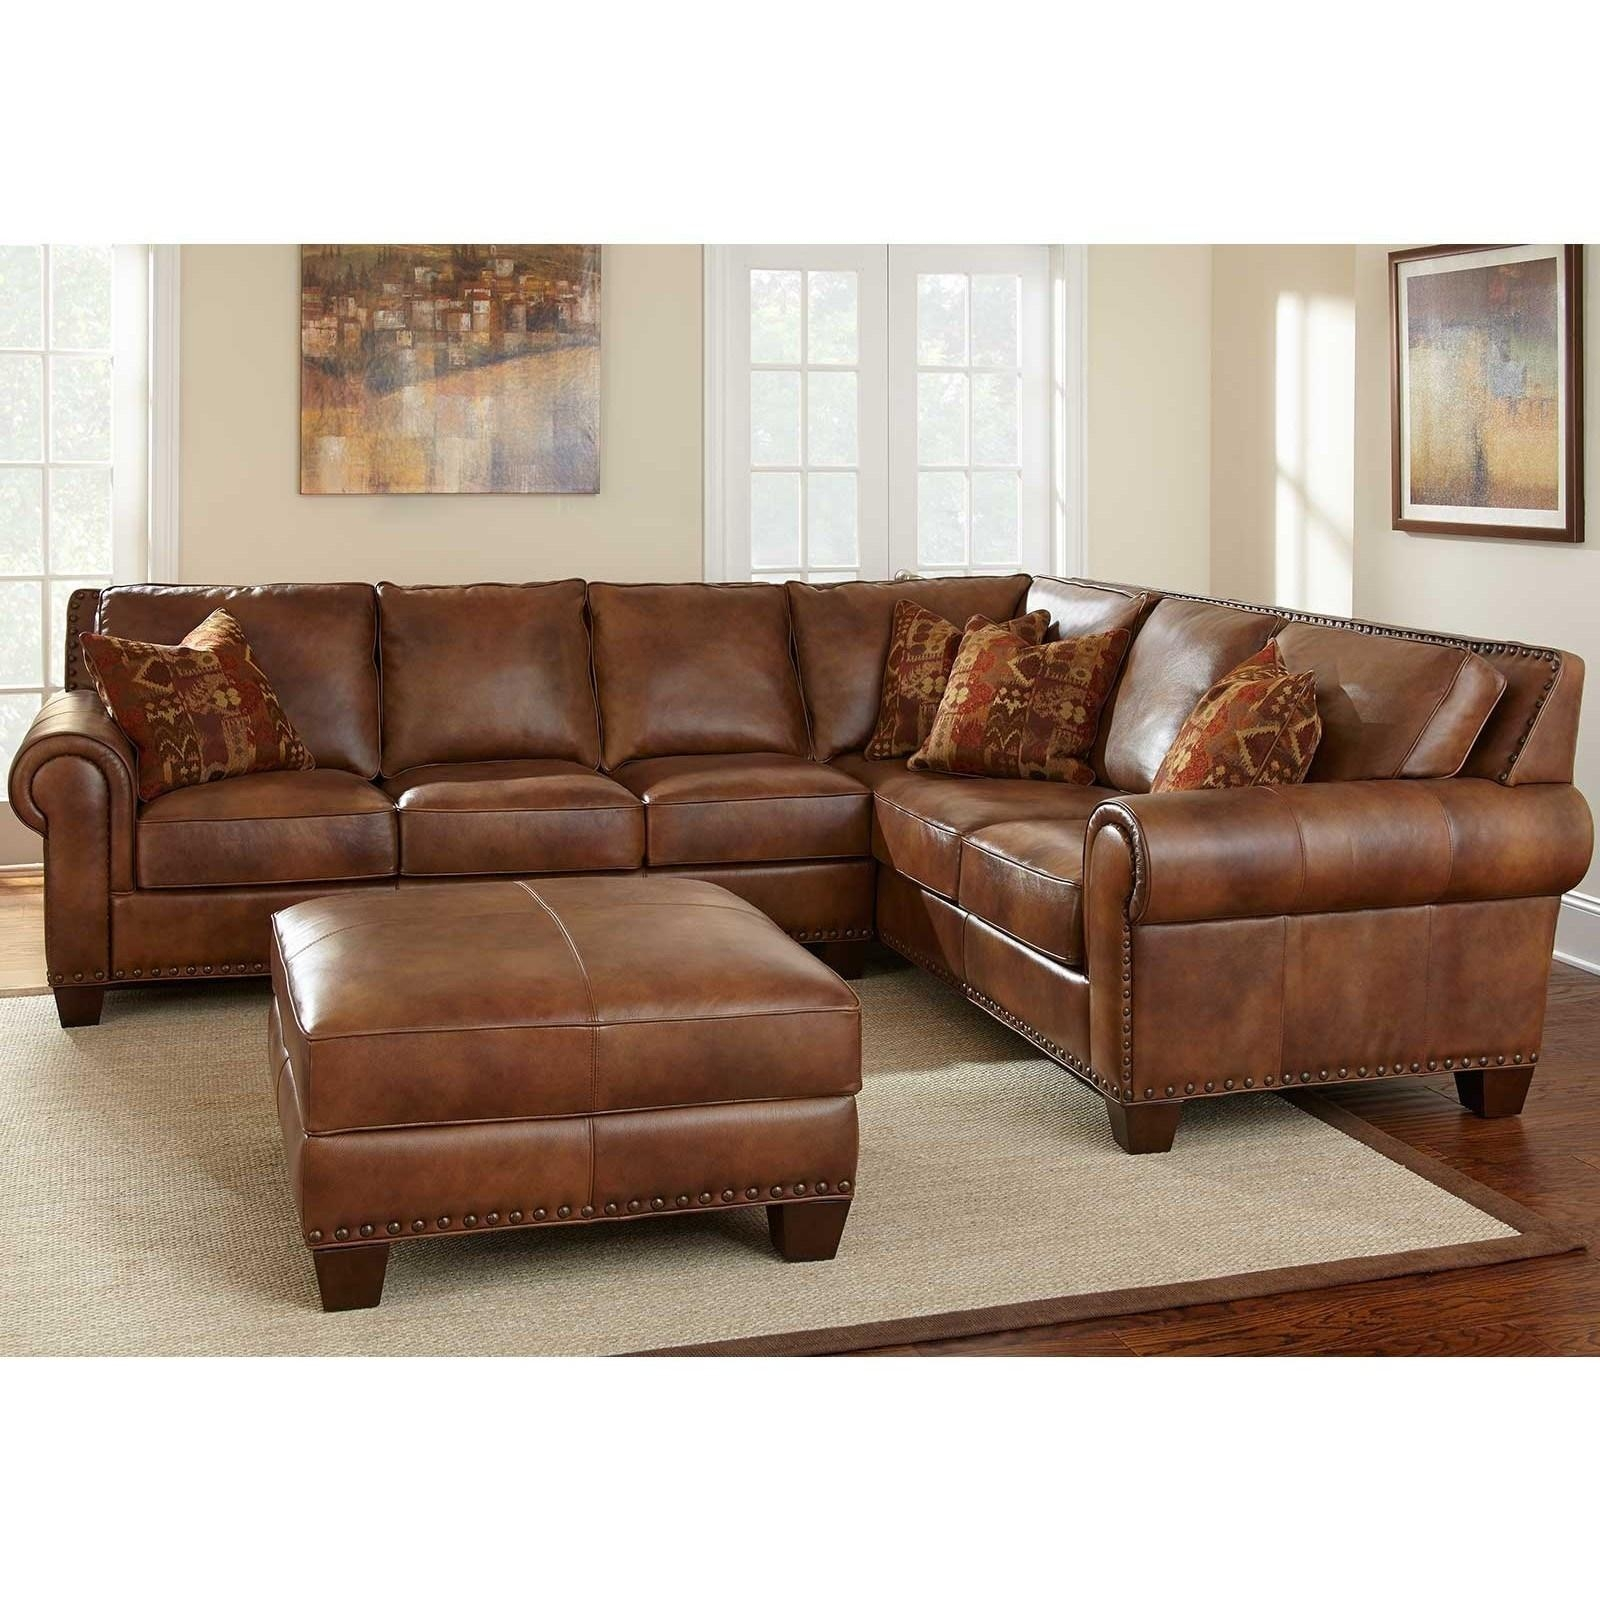 Sofas Center : Sofactionals On Sale For Cheapcloth Salemoon Pit Regarding Used Sectionals (View 6 of 20)